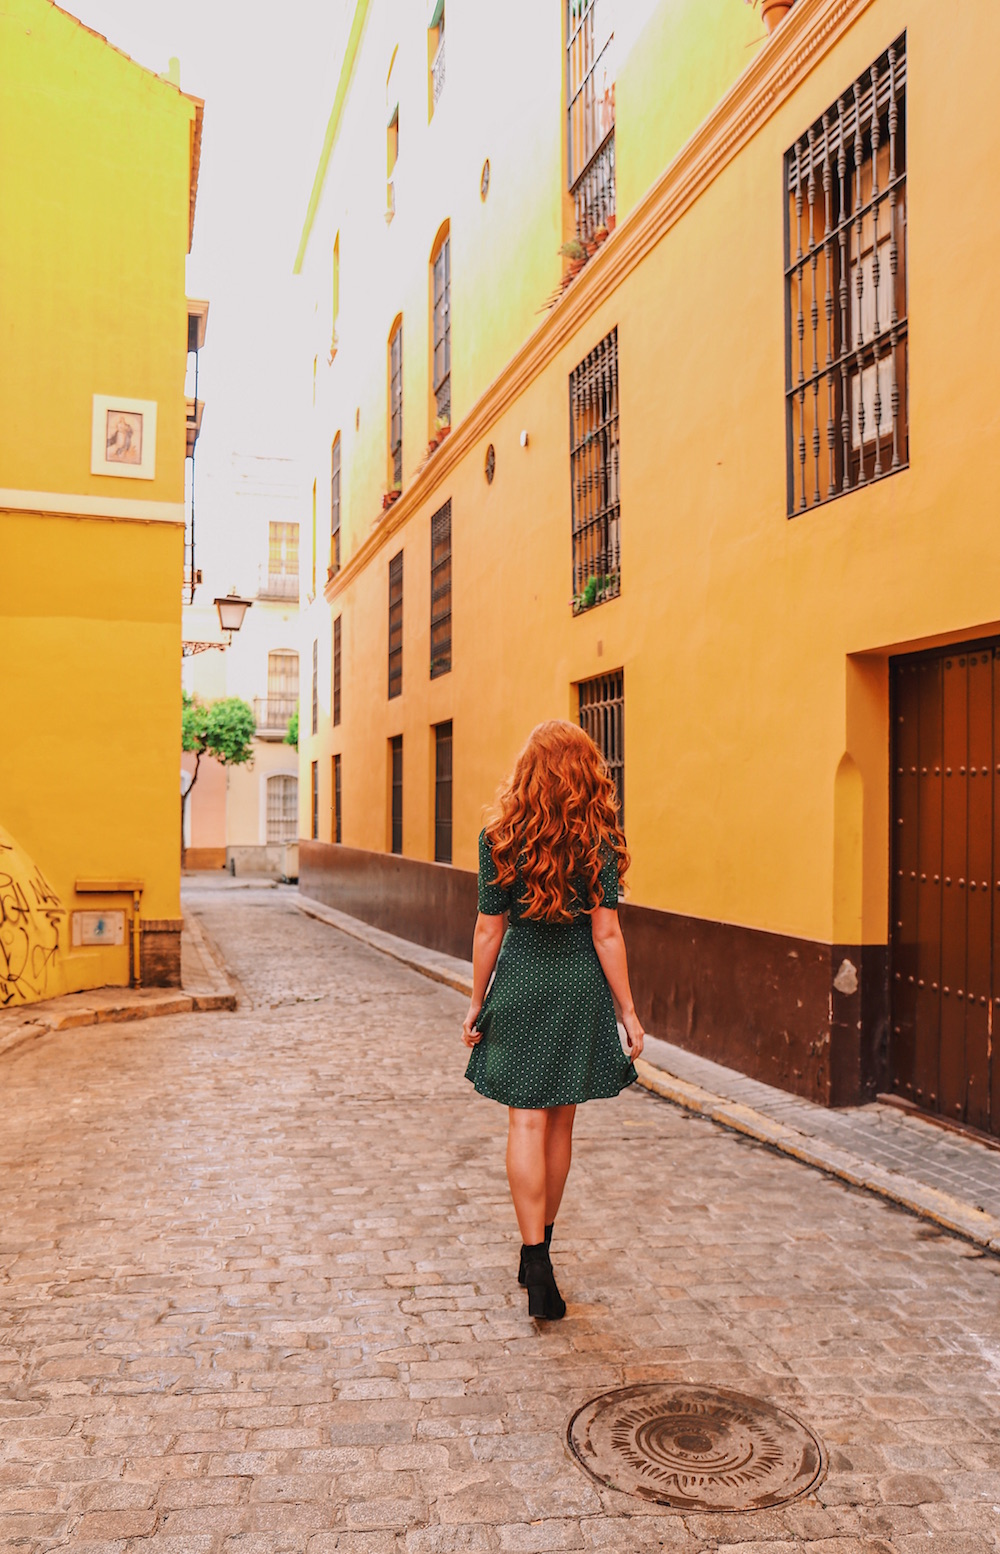 The colourful streets of Santa Cruz - Right around the corner from here is Spain's oldest tapas bar - El Rinconcillio. Click here to read all about our experience there.